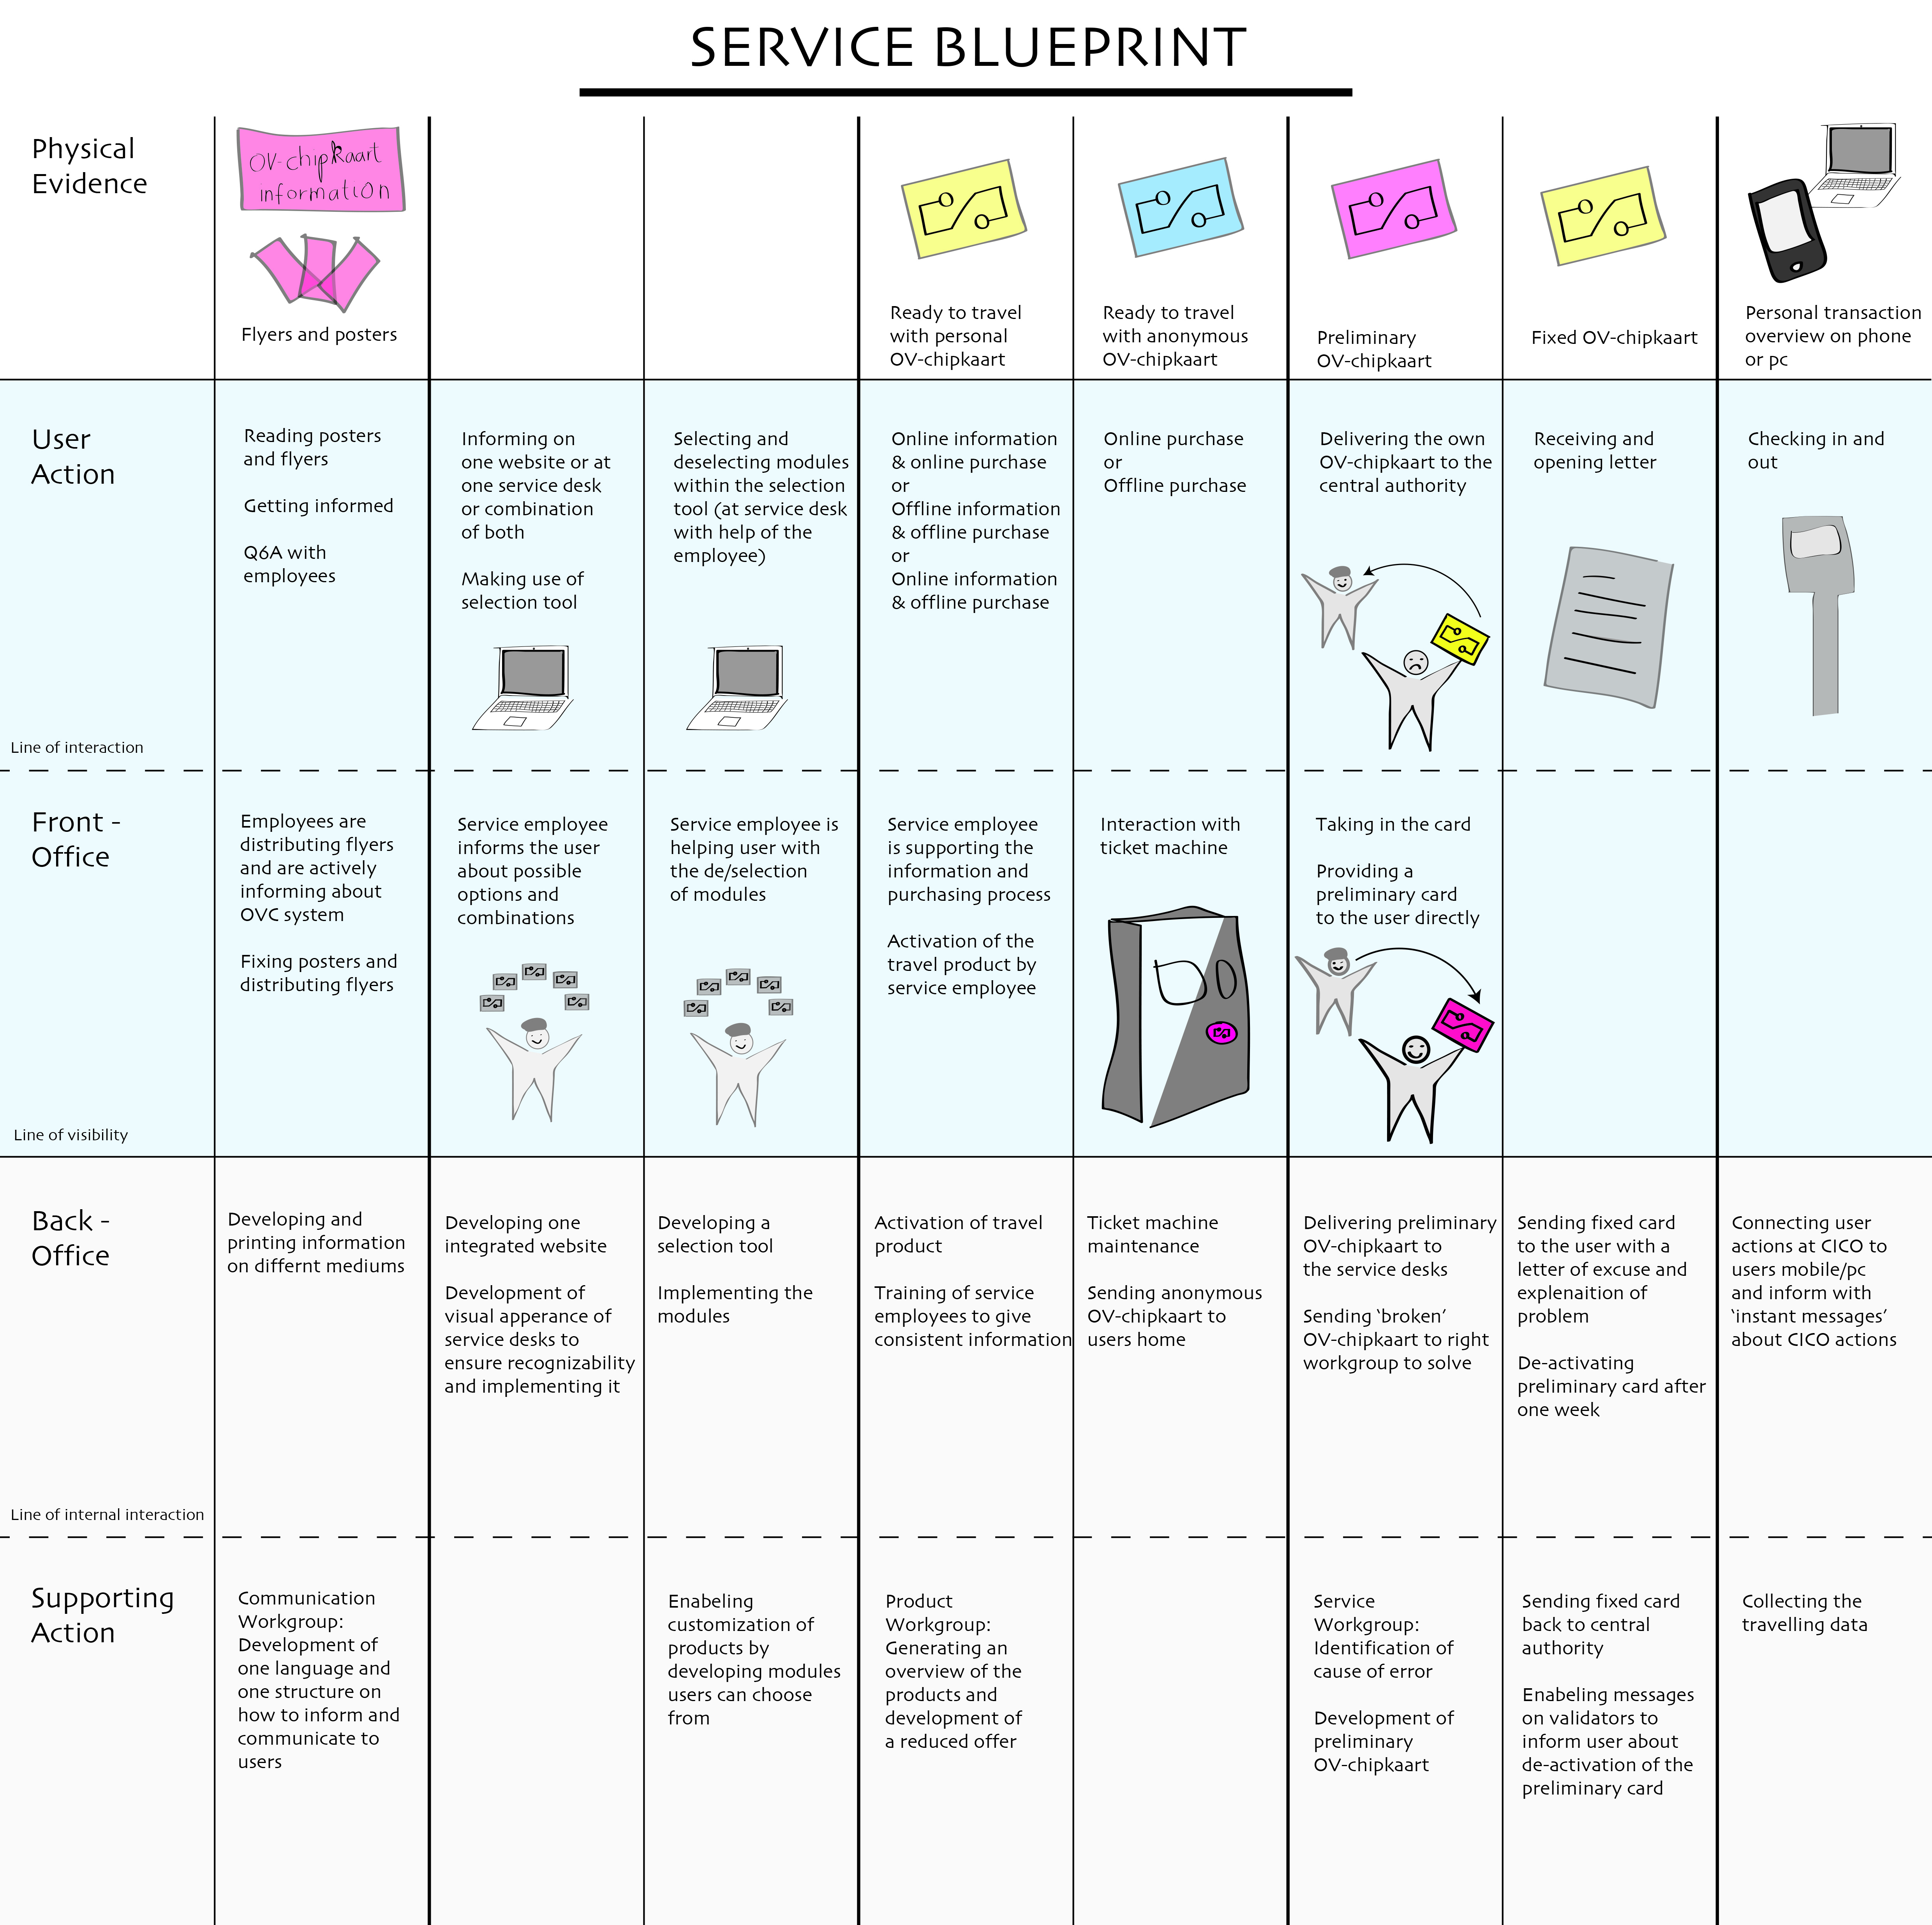 Card acquisition and service provision service blueprint for the desired service malvernweather Choice Image